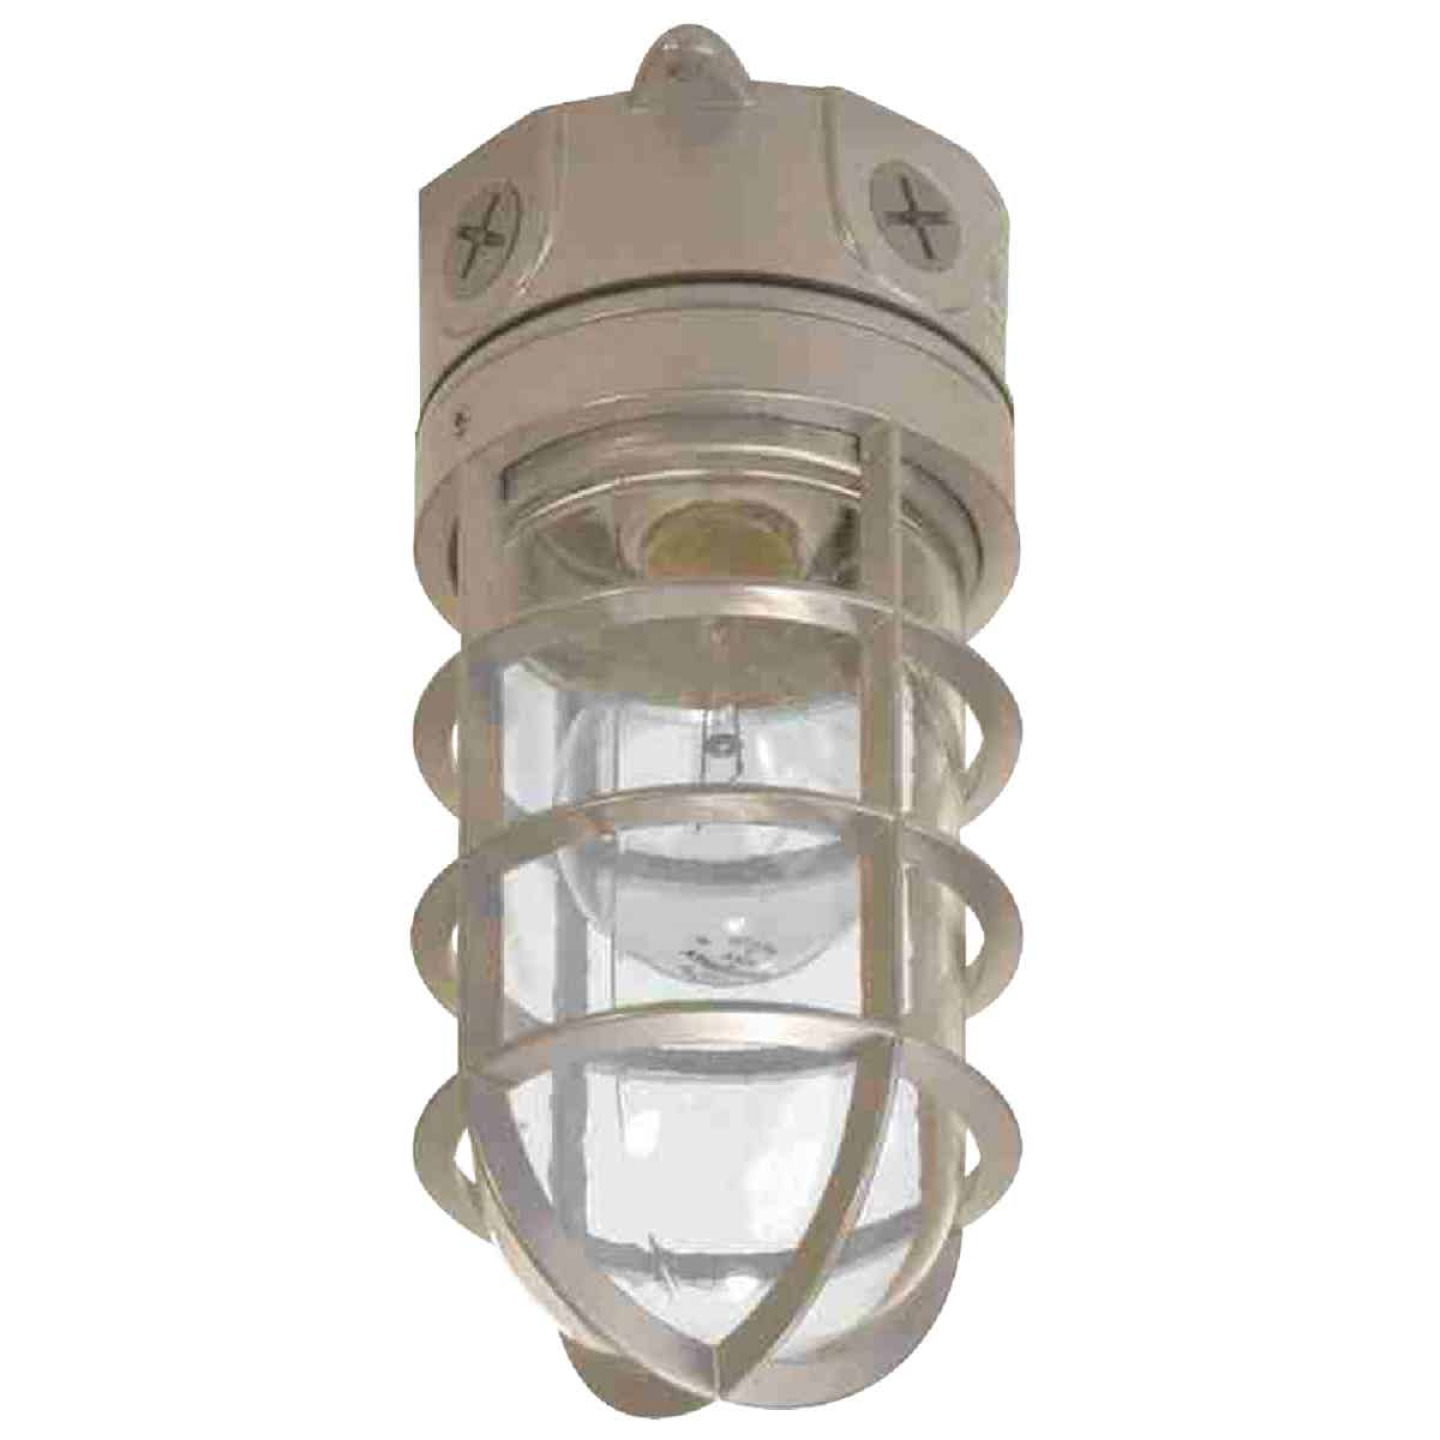 All-Pro A19 Incandescent Vapor Tight Haymow Barn Light Fixture Image 1